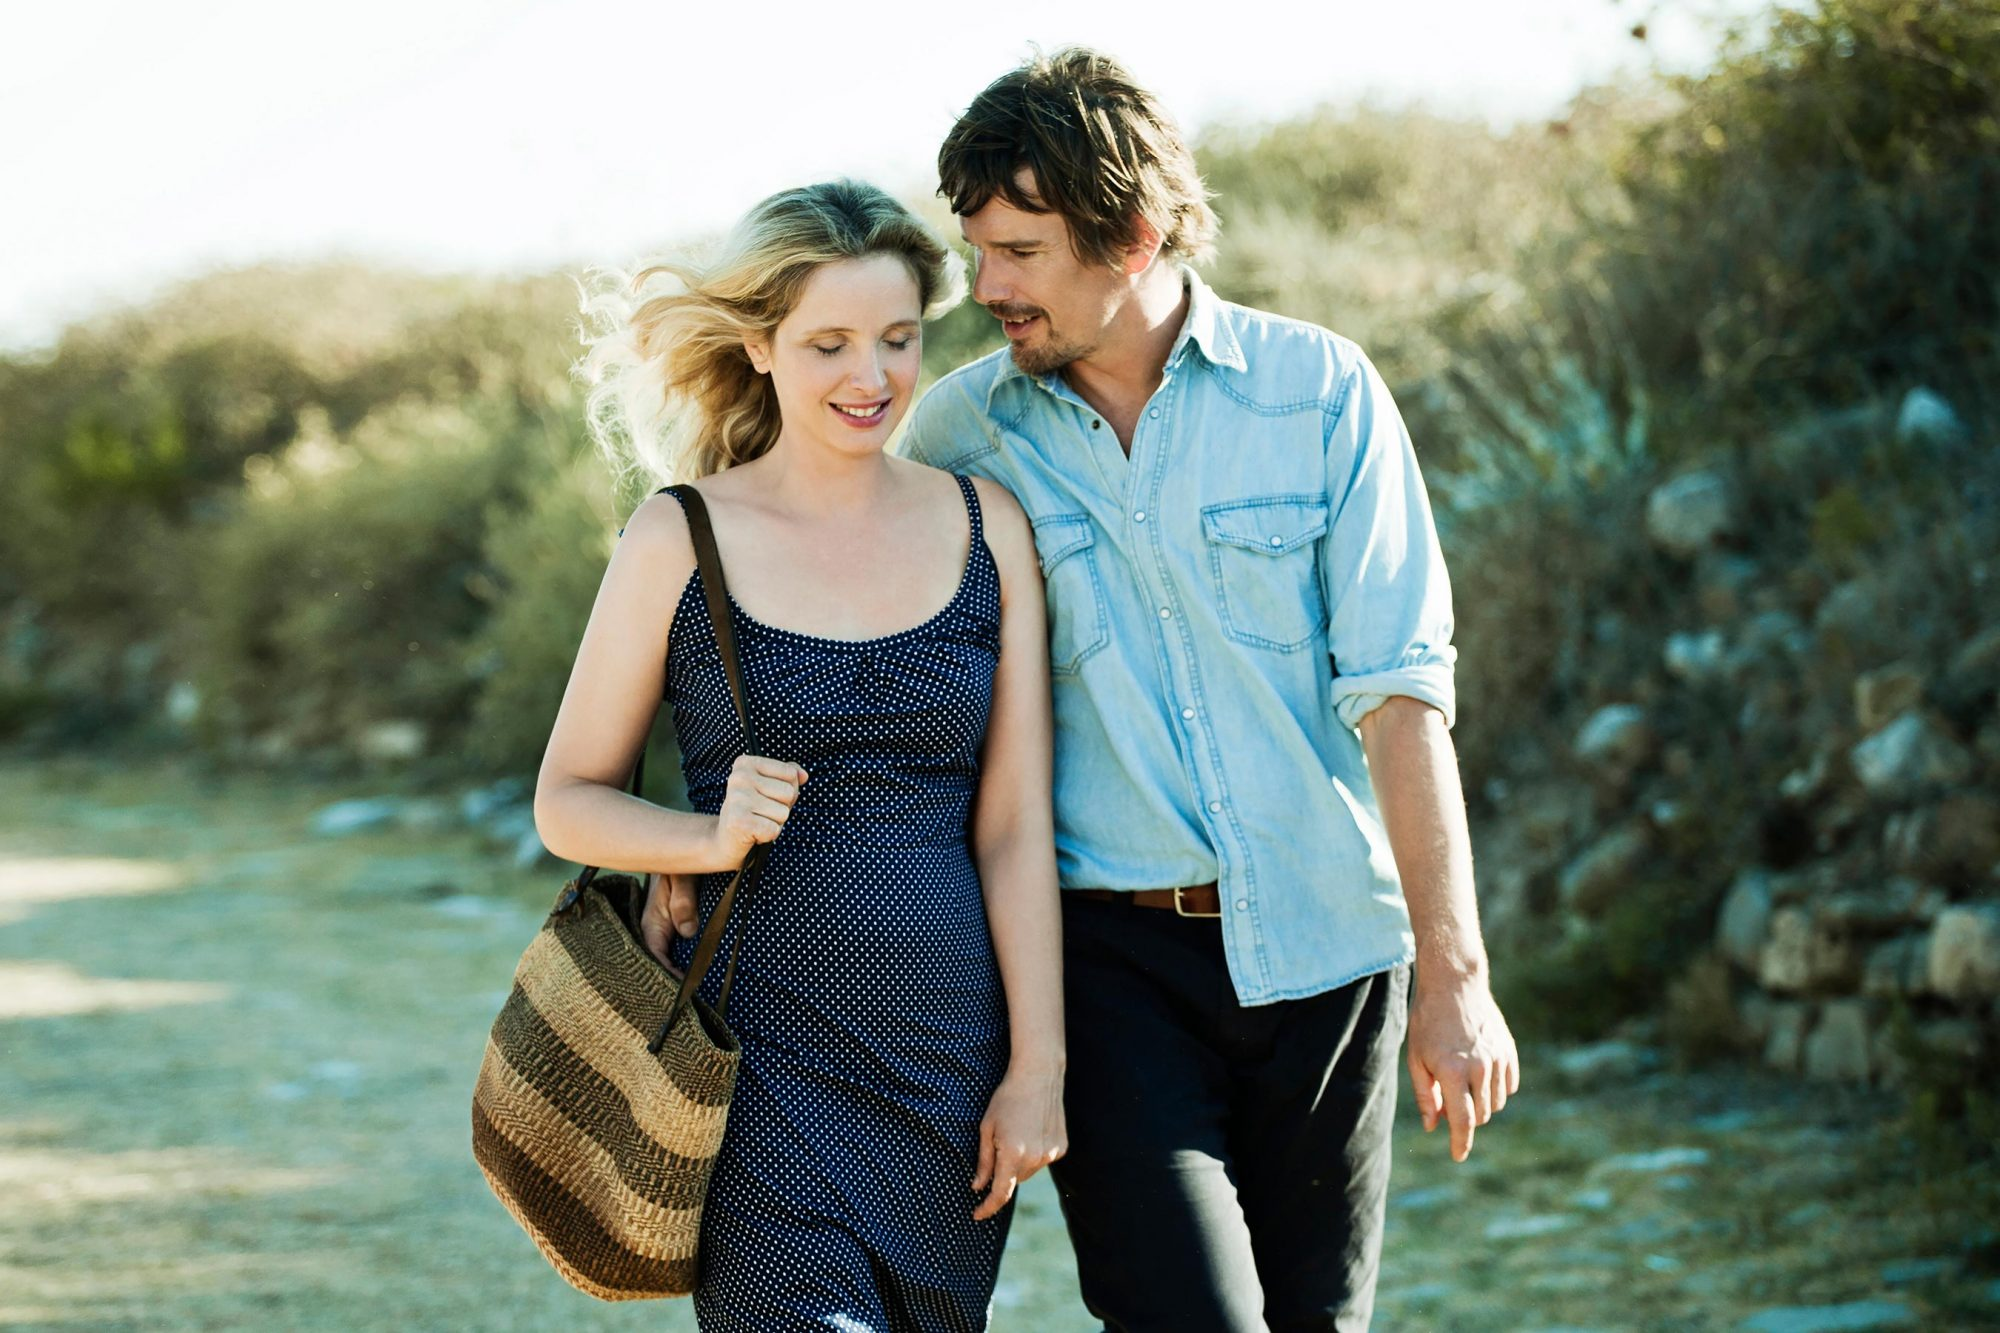 Before Midnight (2013)Julie Delpy as Celine and Ethan Hawke as Jesse